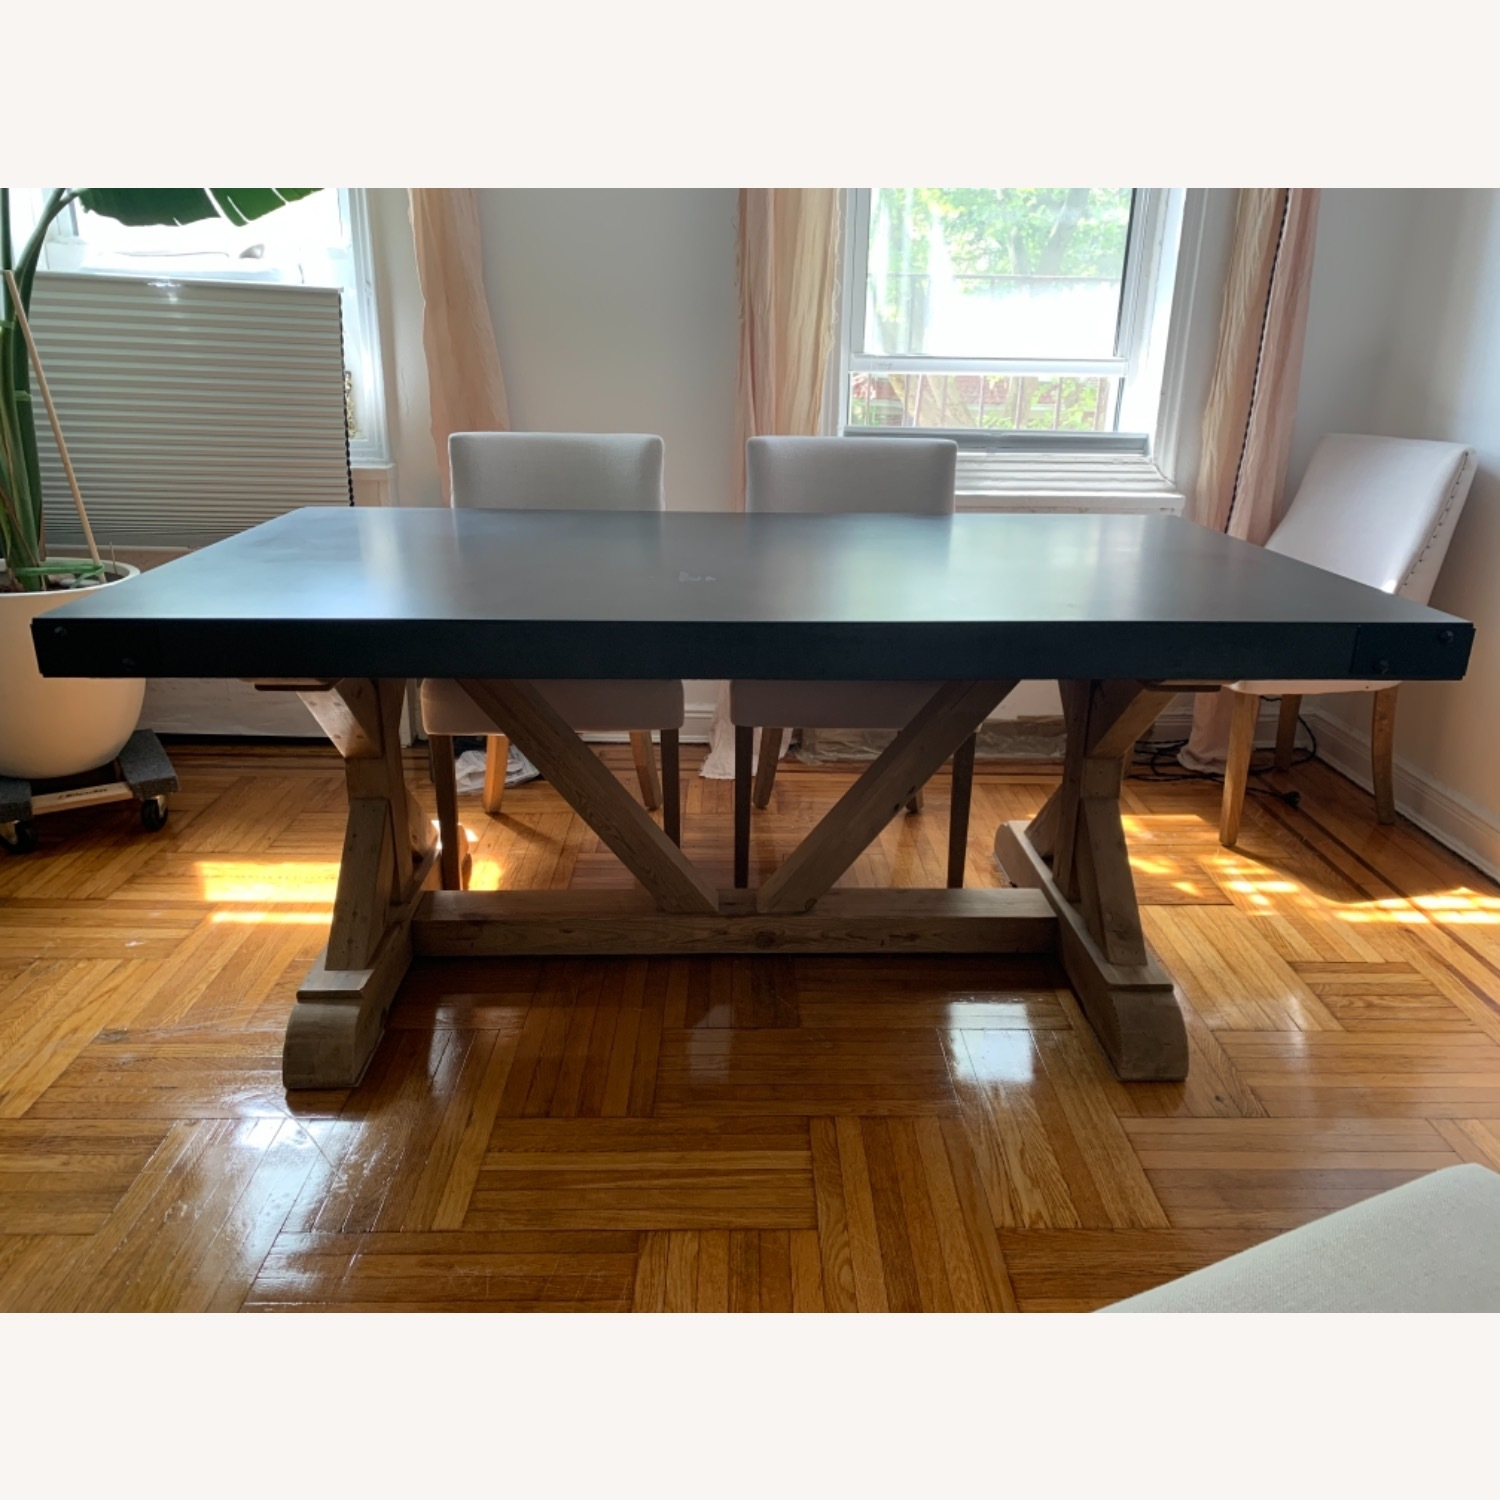 Restoration Hardware Salvaged Wood and Concrete Dining Table - image-9